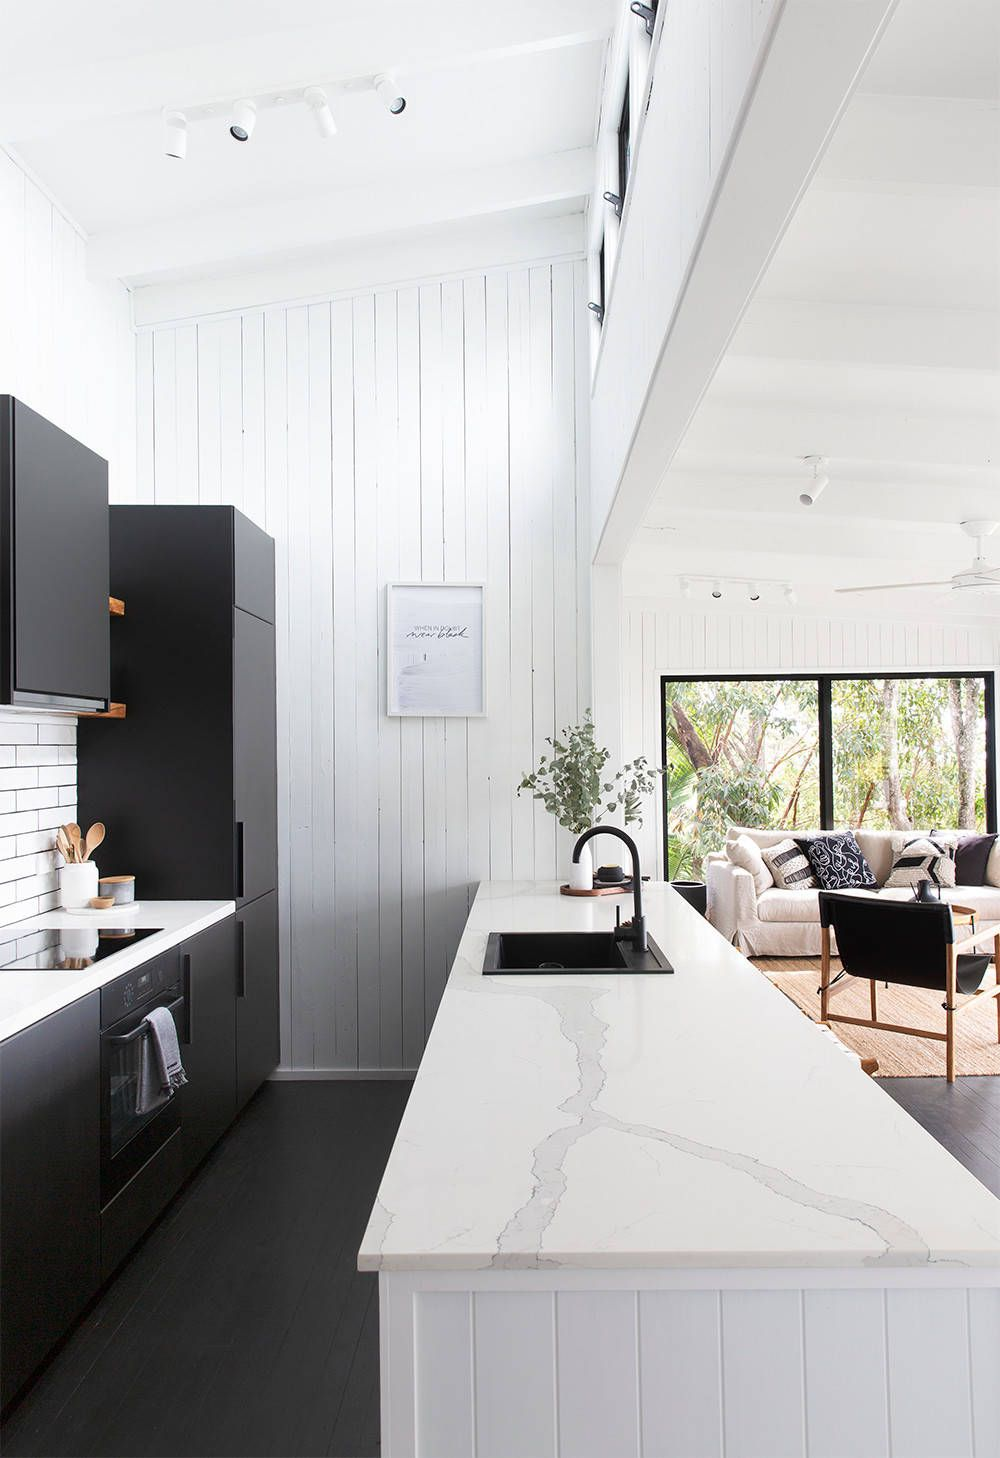 Light-filled beach style kitchen in black and white